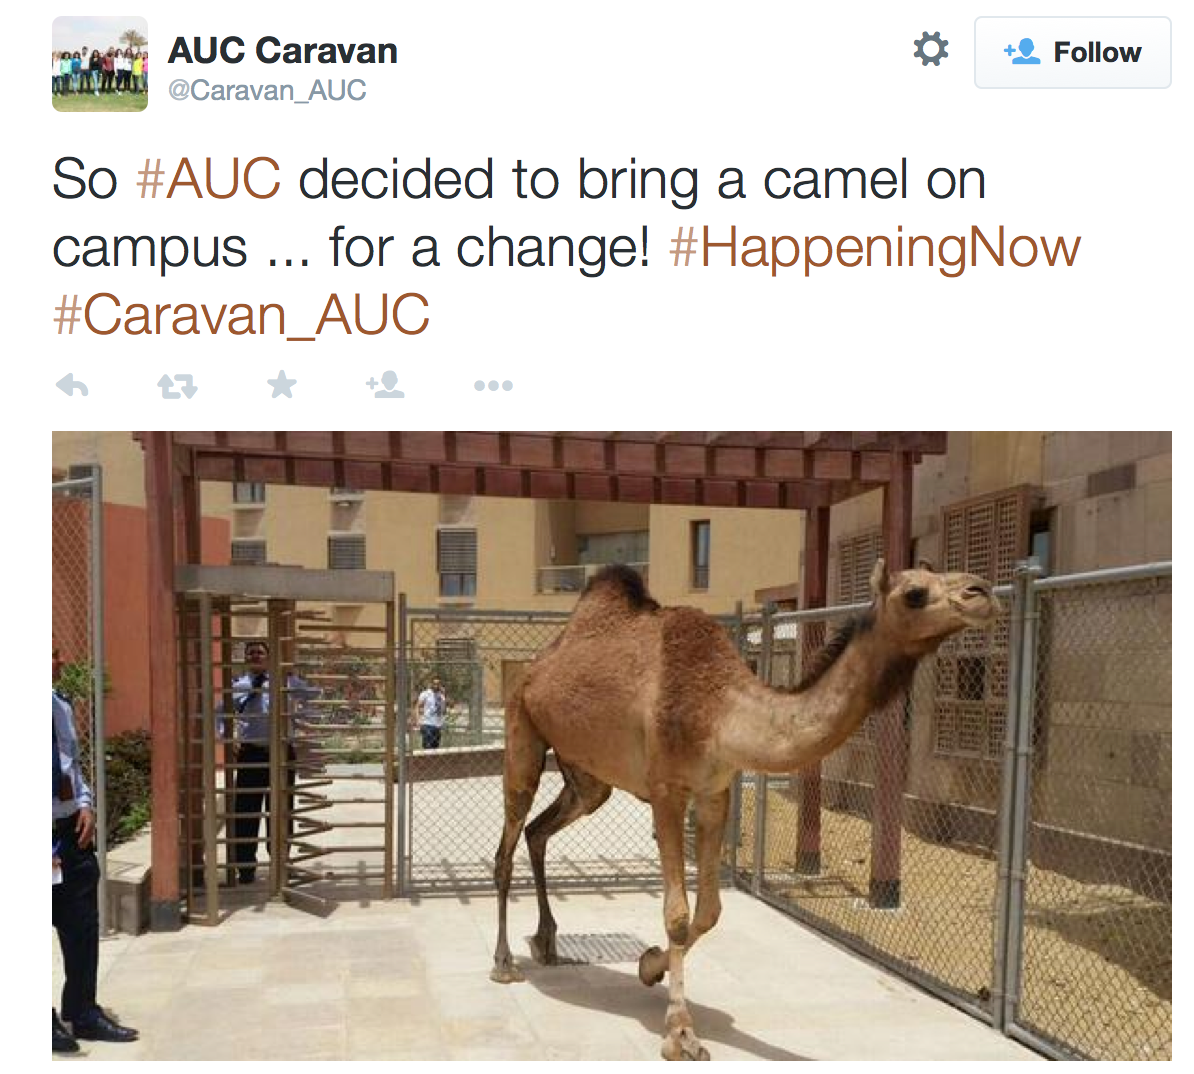 Camel at AUC